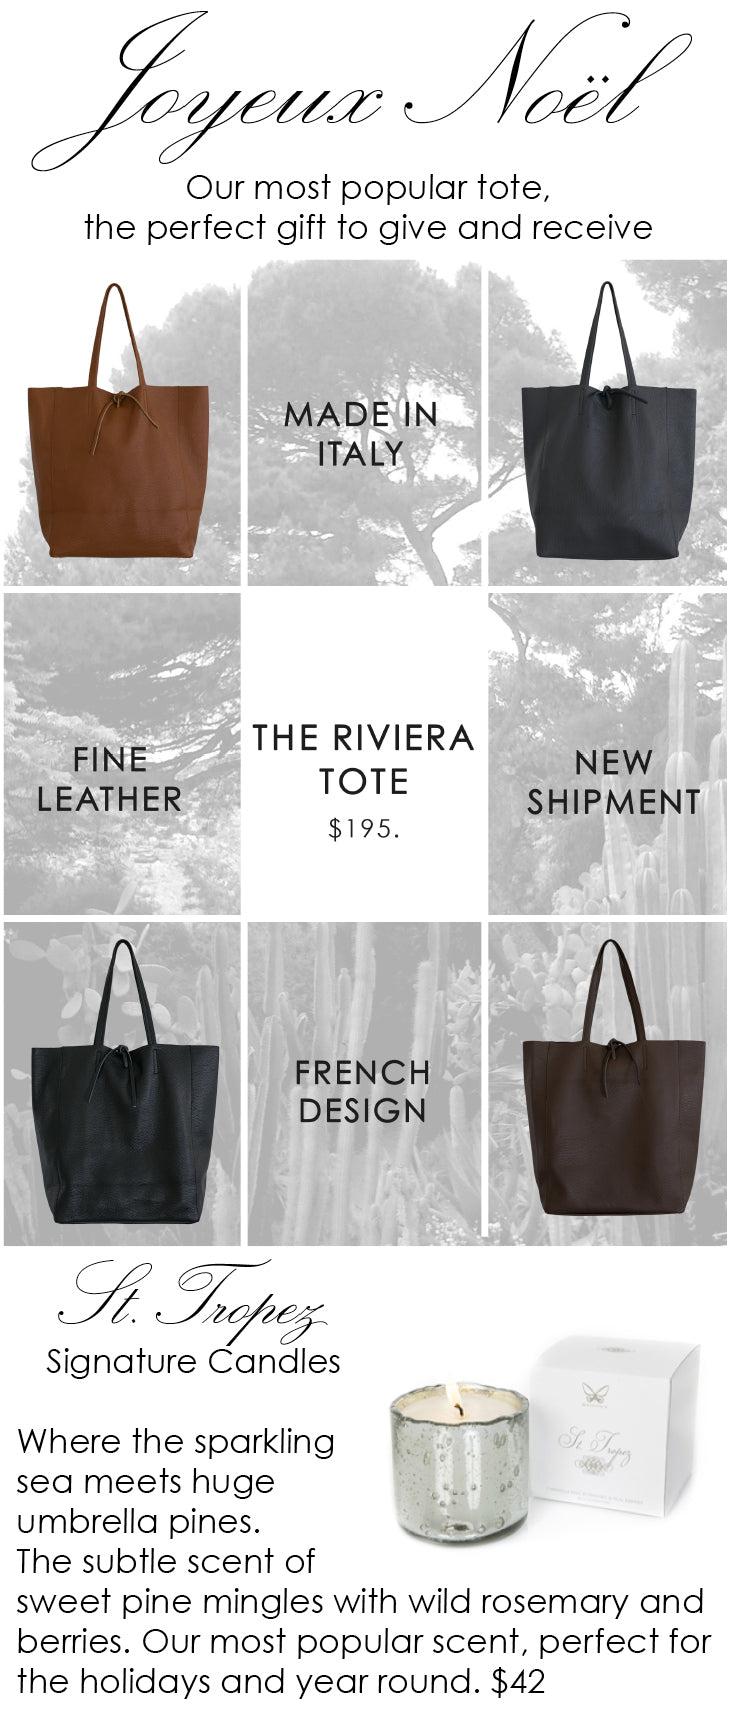 The Perfect Gift – The Riviera Tote